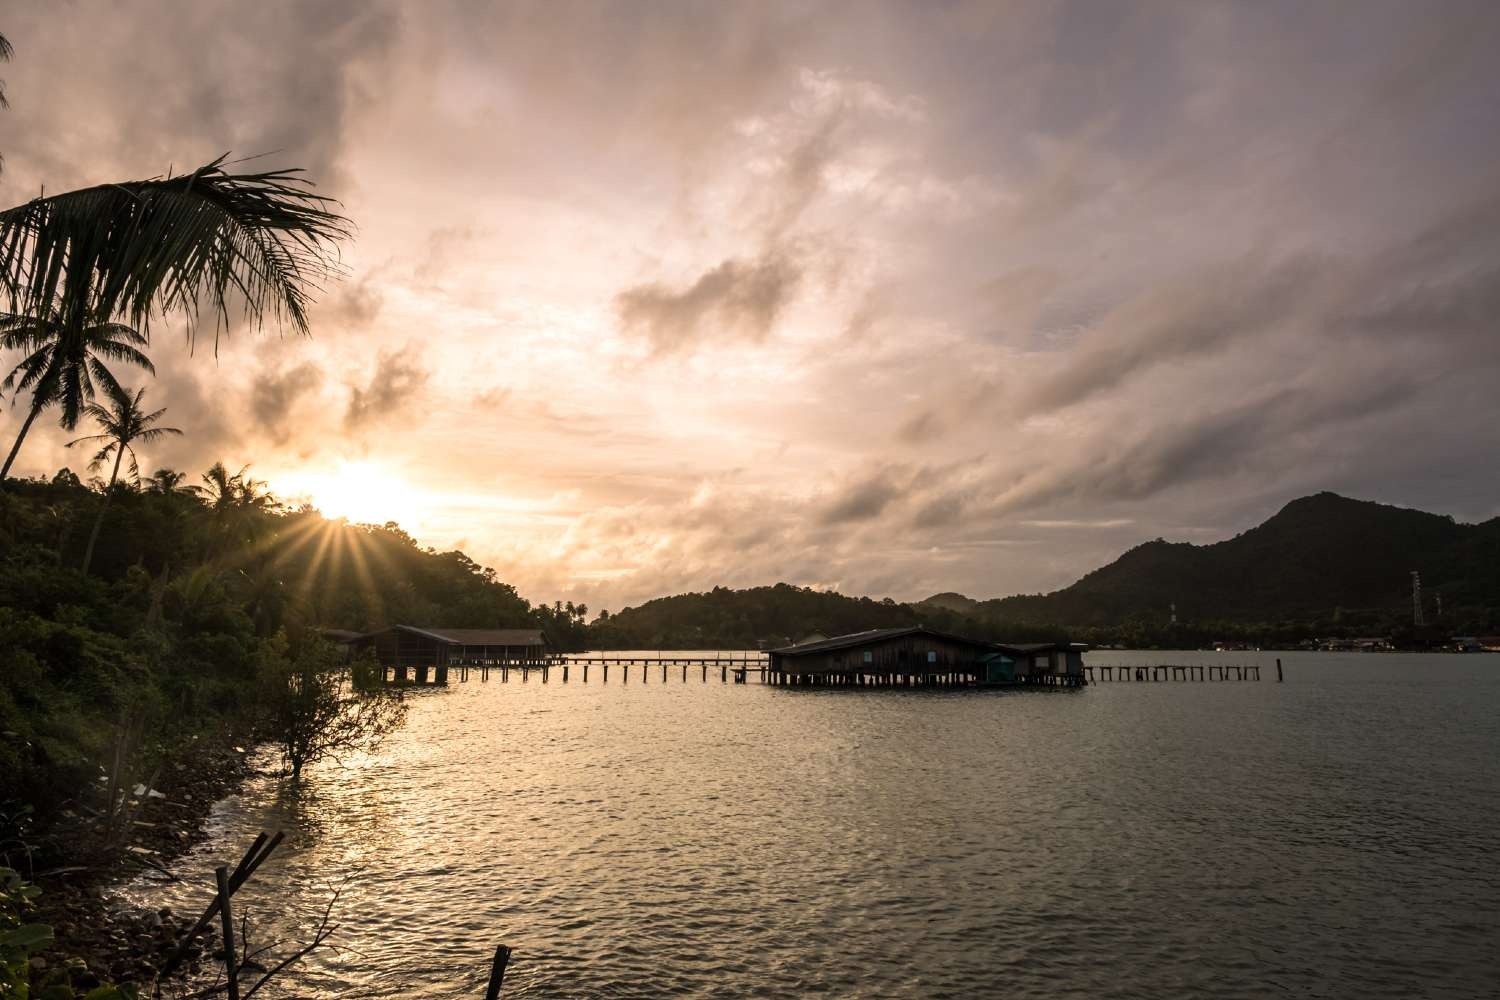 Pier on Koh Chang in Thailand